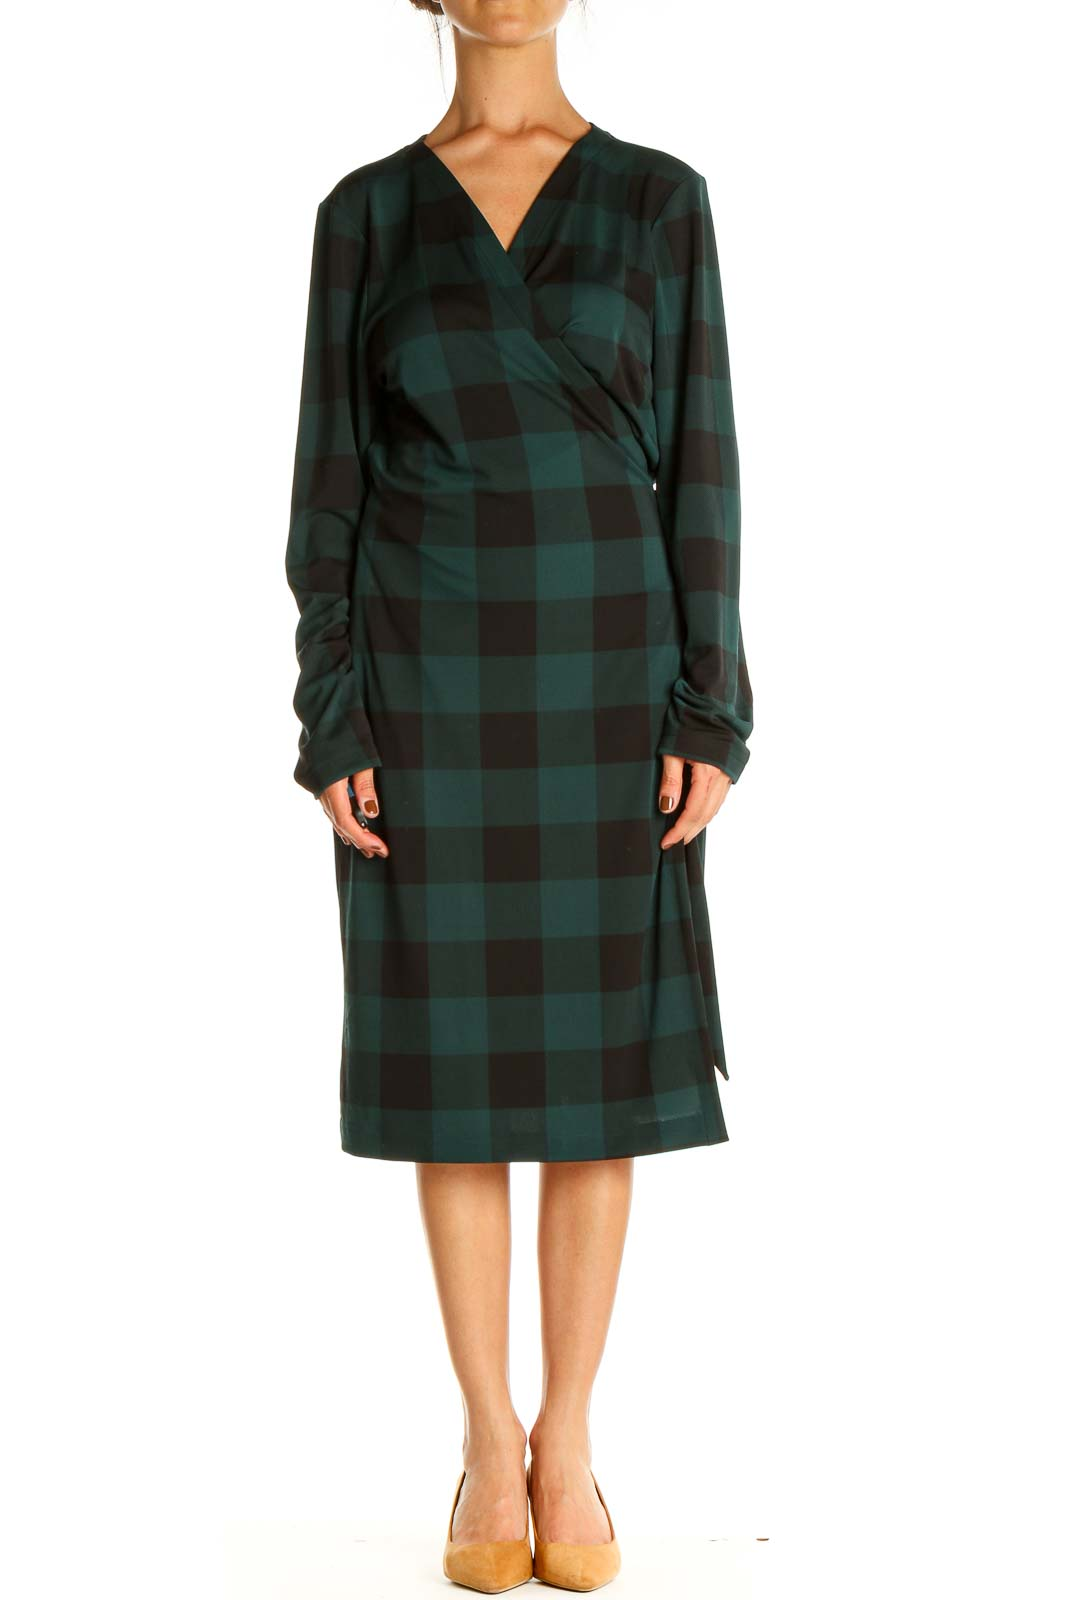 Green Checkered Day Sheath Dress Front